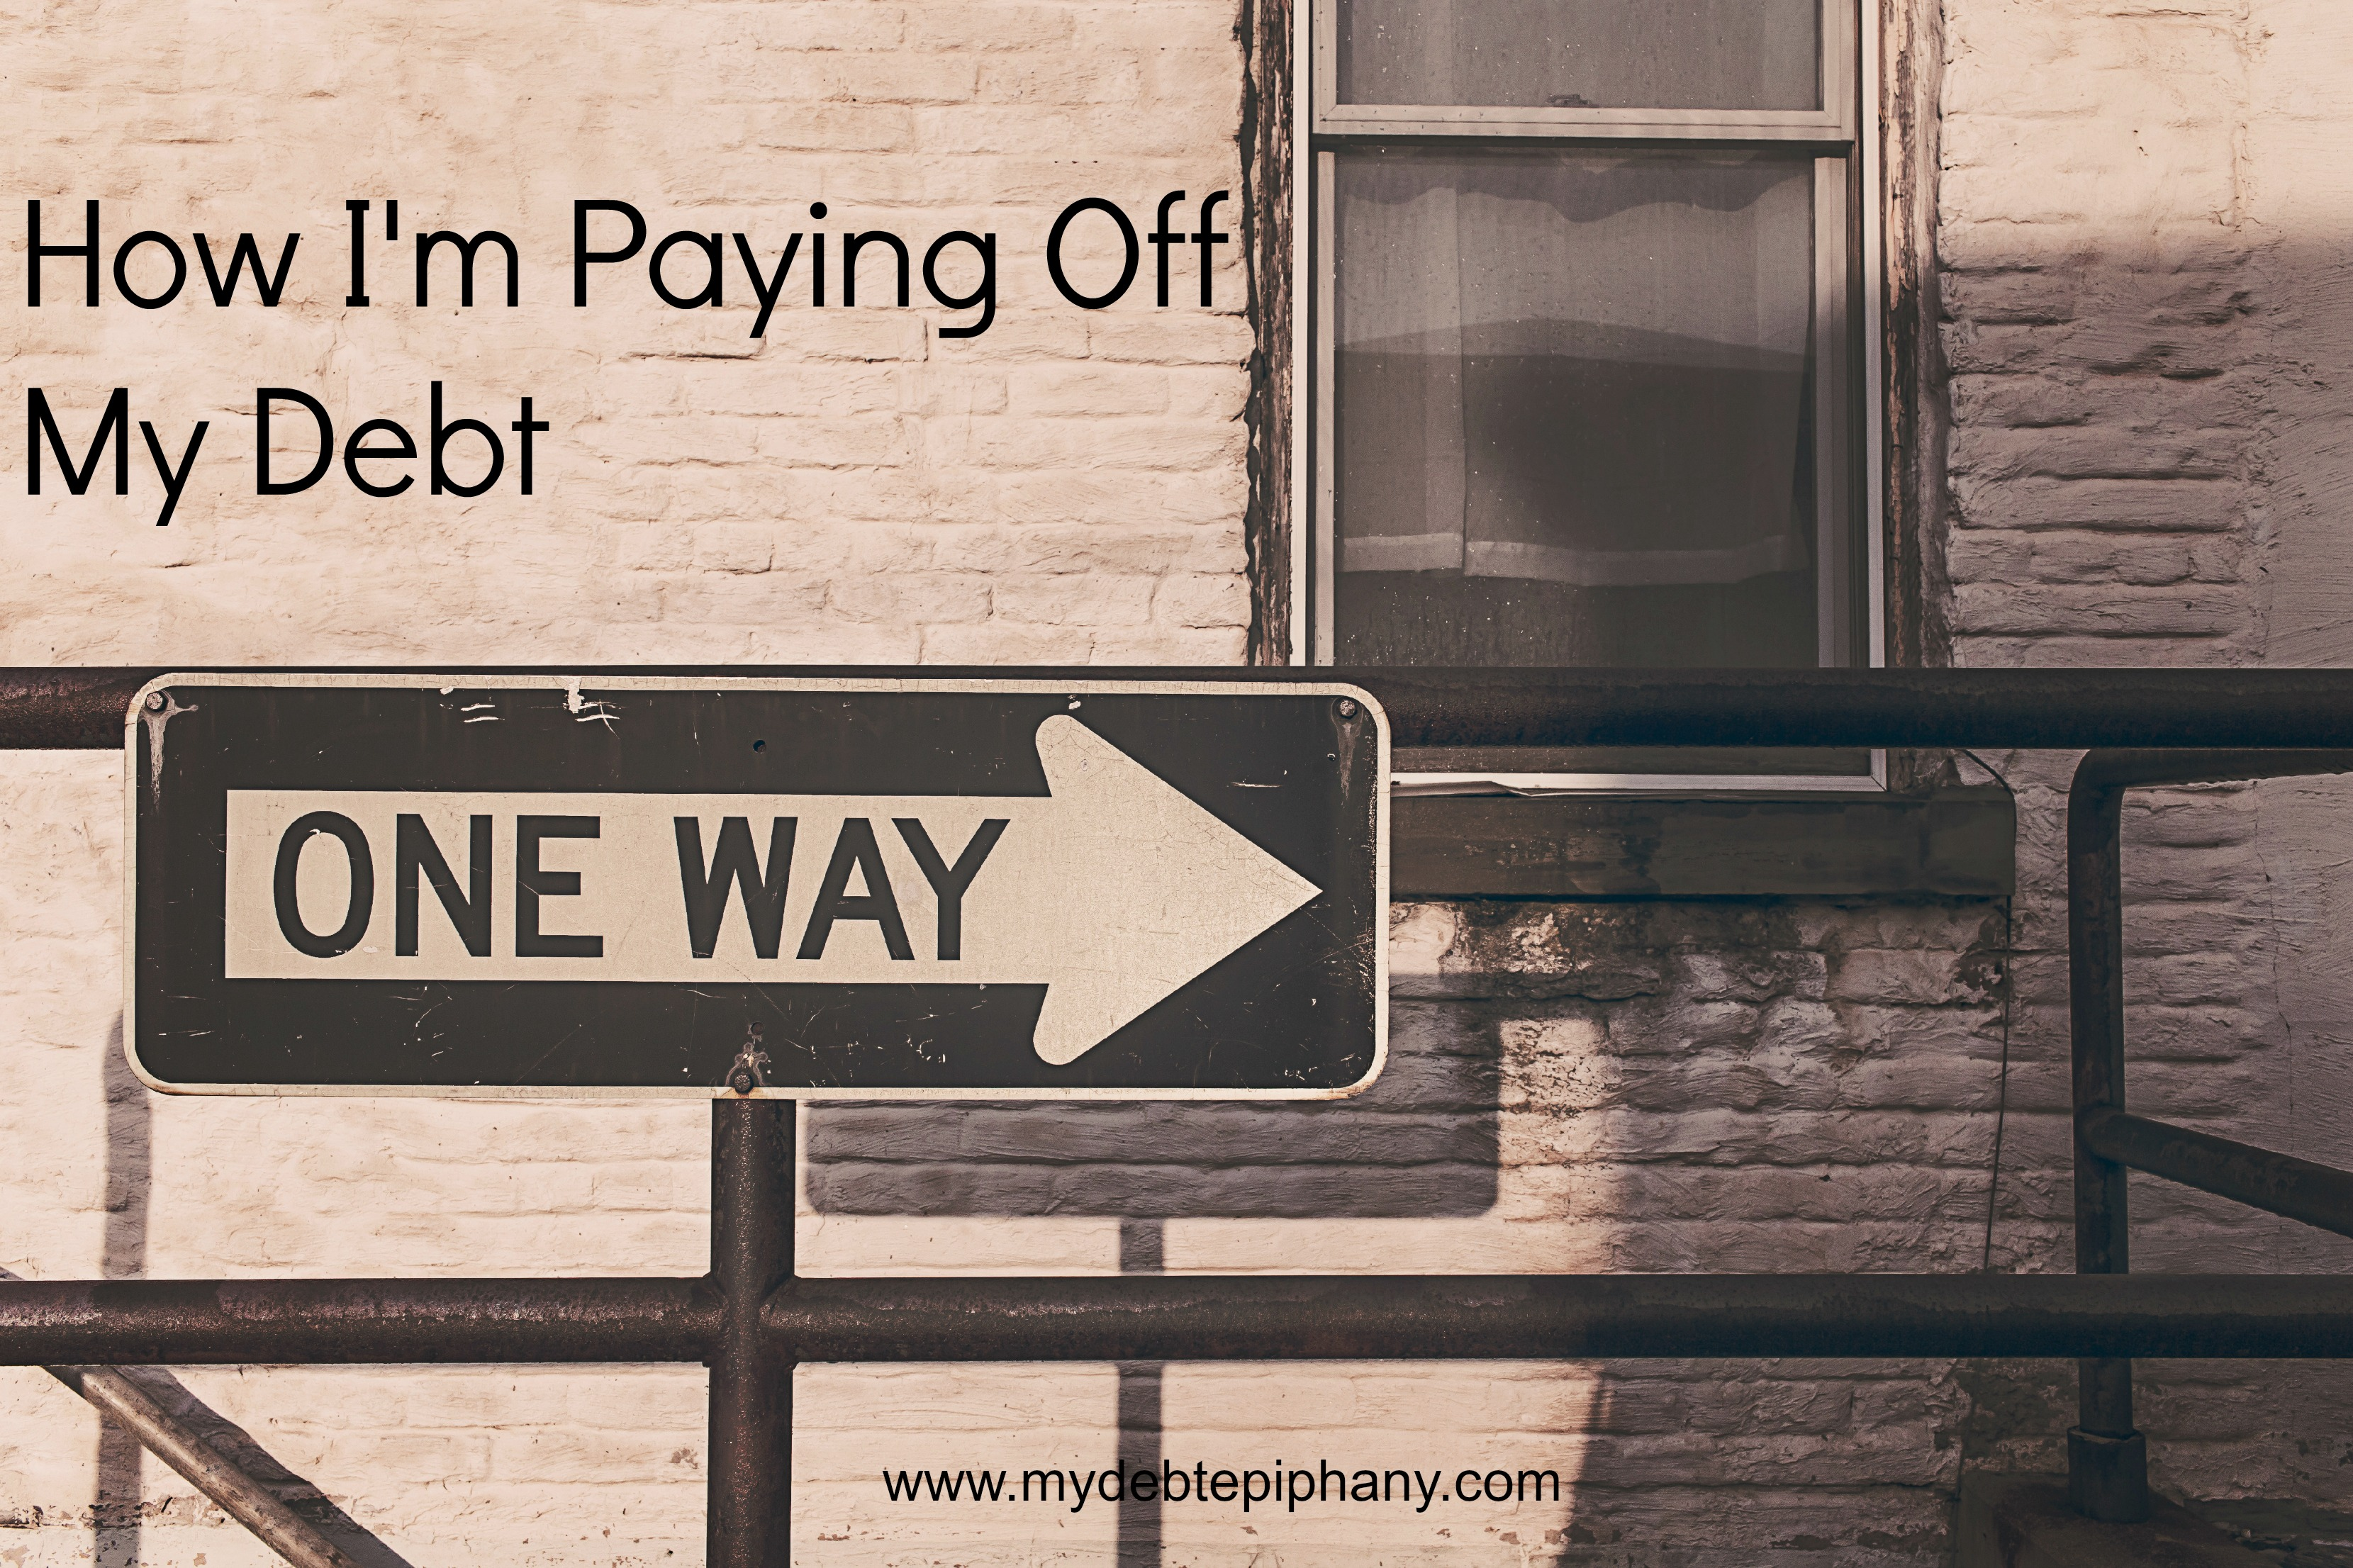 How I'm Paying Off My Debt